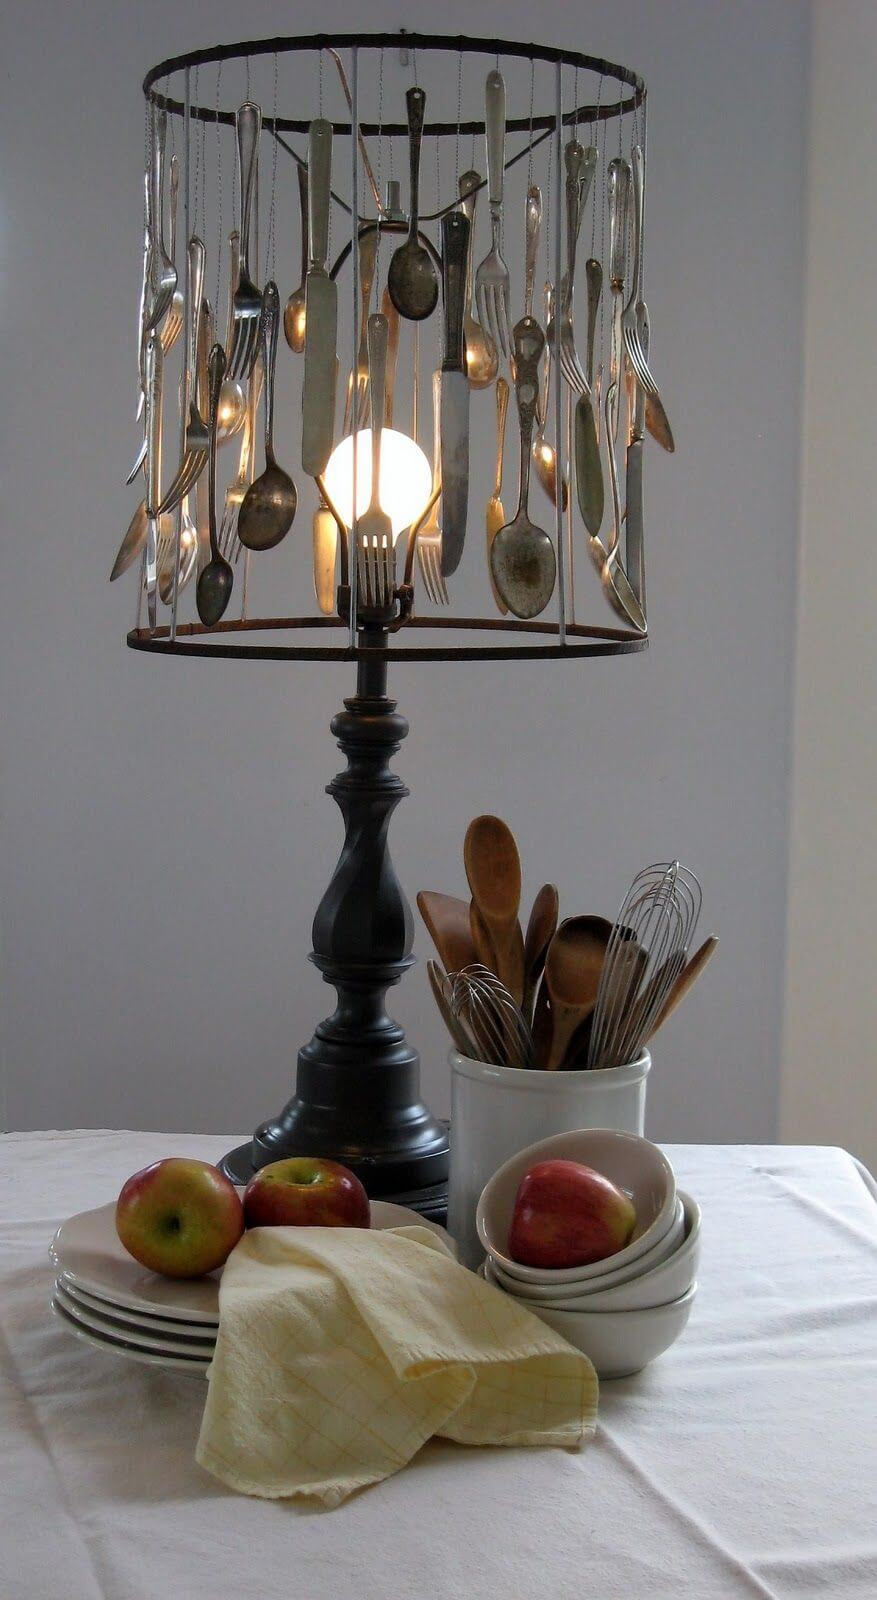 Cool Upcycled Utensil Table Lamp